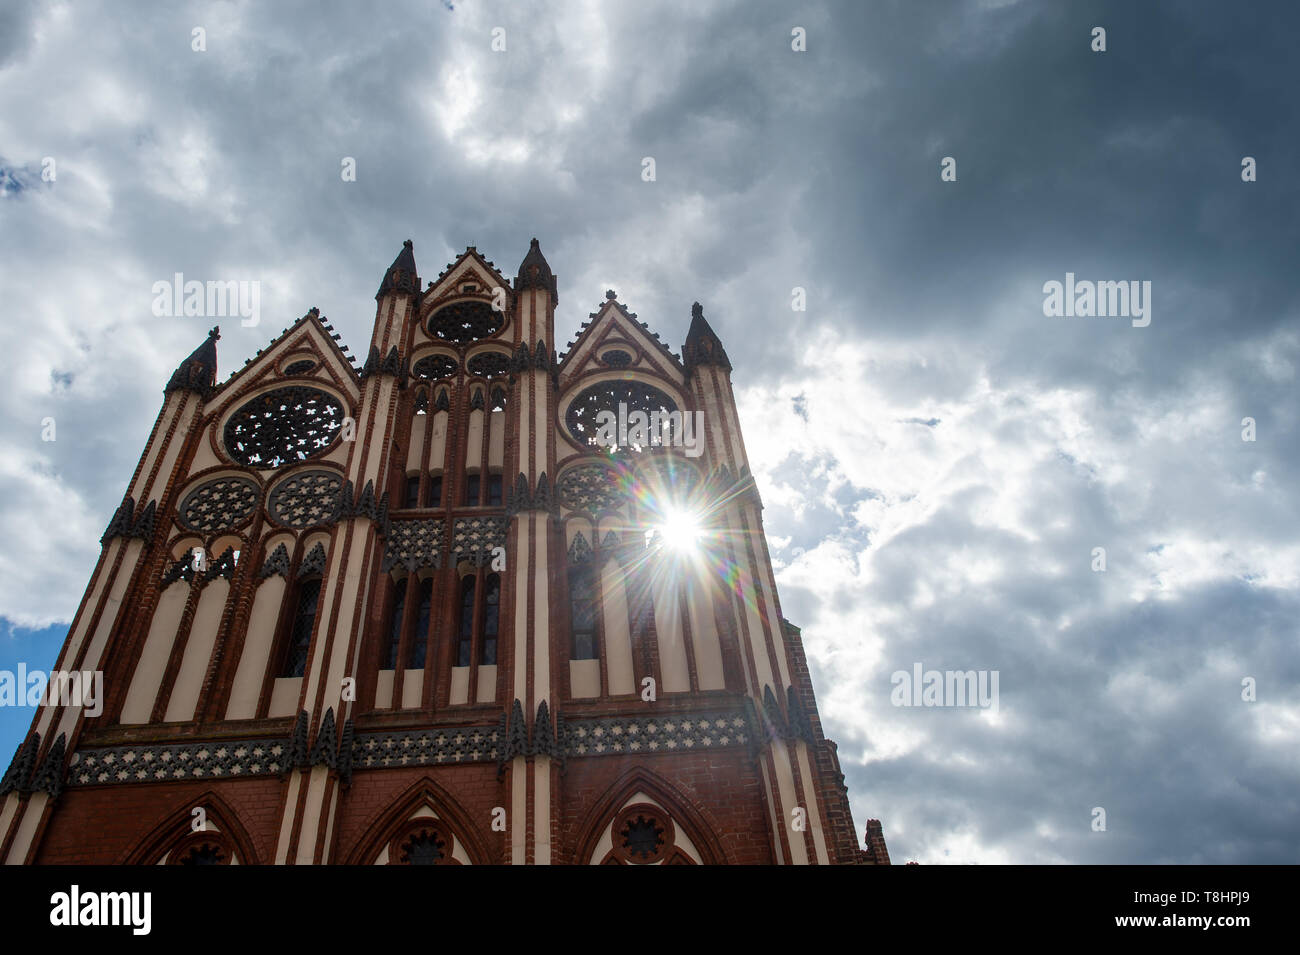 13 May 2019, Saxony-Anhalt, Tangermünde: The sun shines through a window in the façade of the town hall, while dark clouds pass over it. In the coming days the Altmark will remain changeable. Photo: Klaus-Dietmar Gabbert/dpa-Zentralbild/ZB - Stock Image